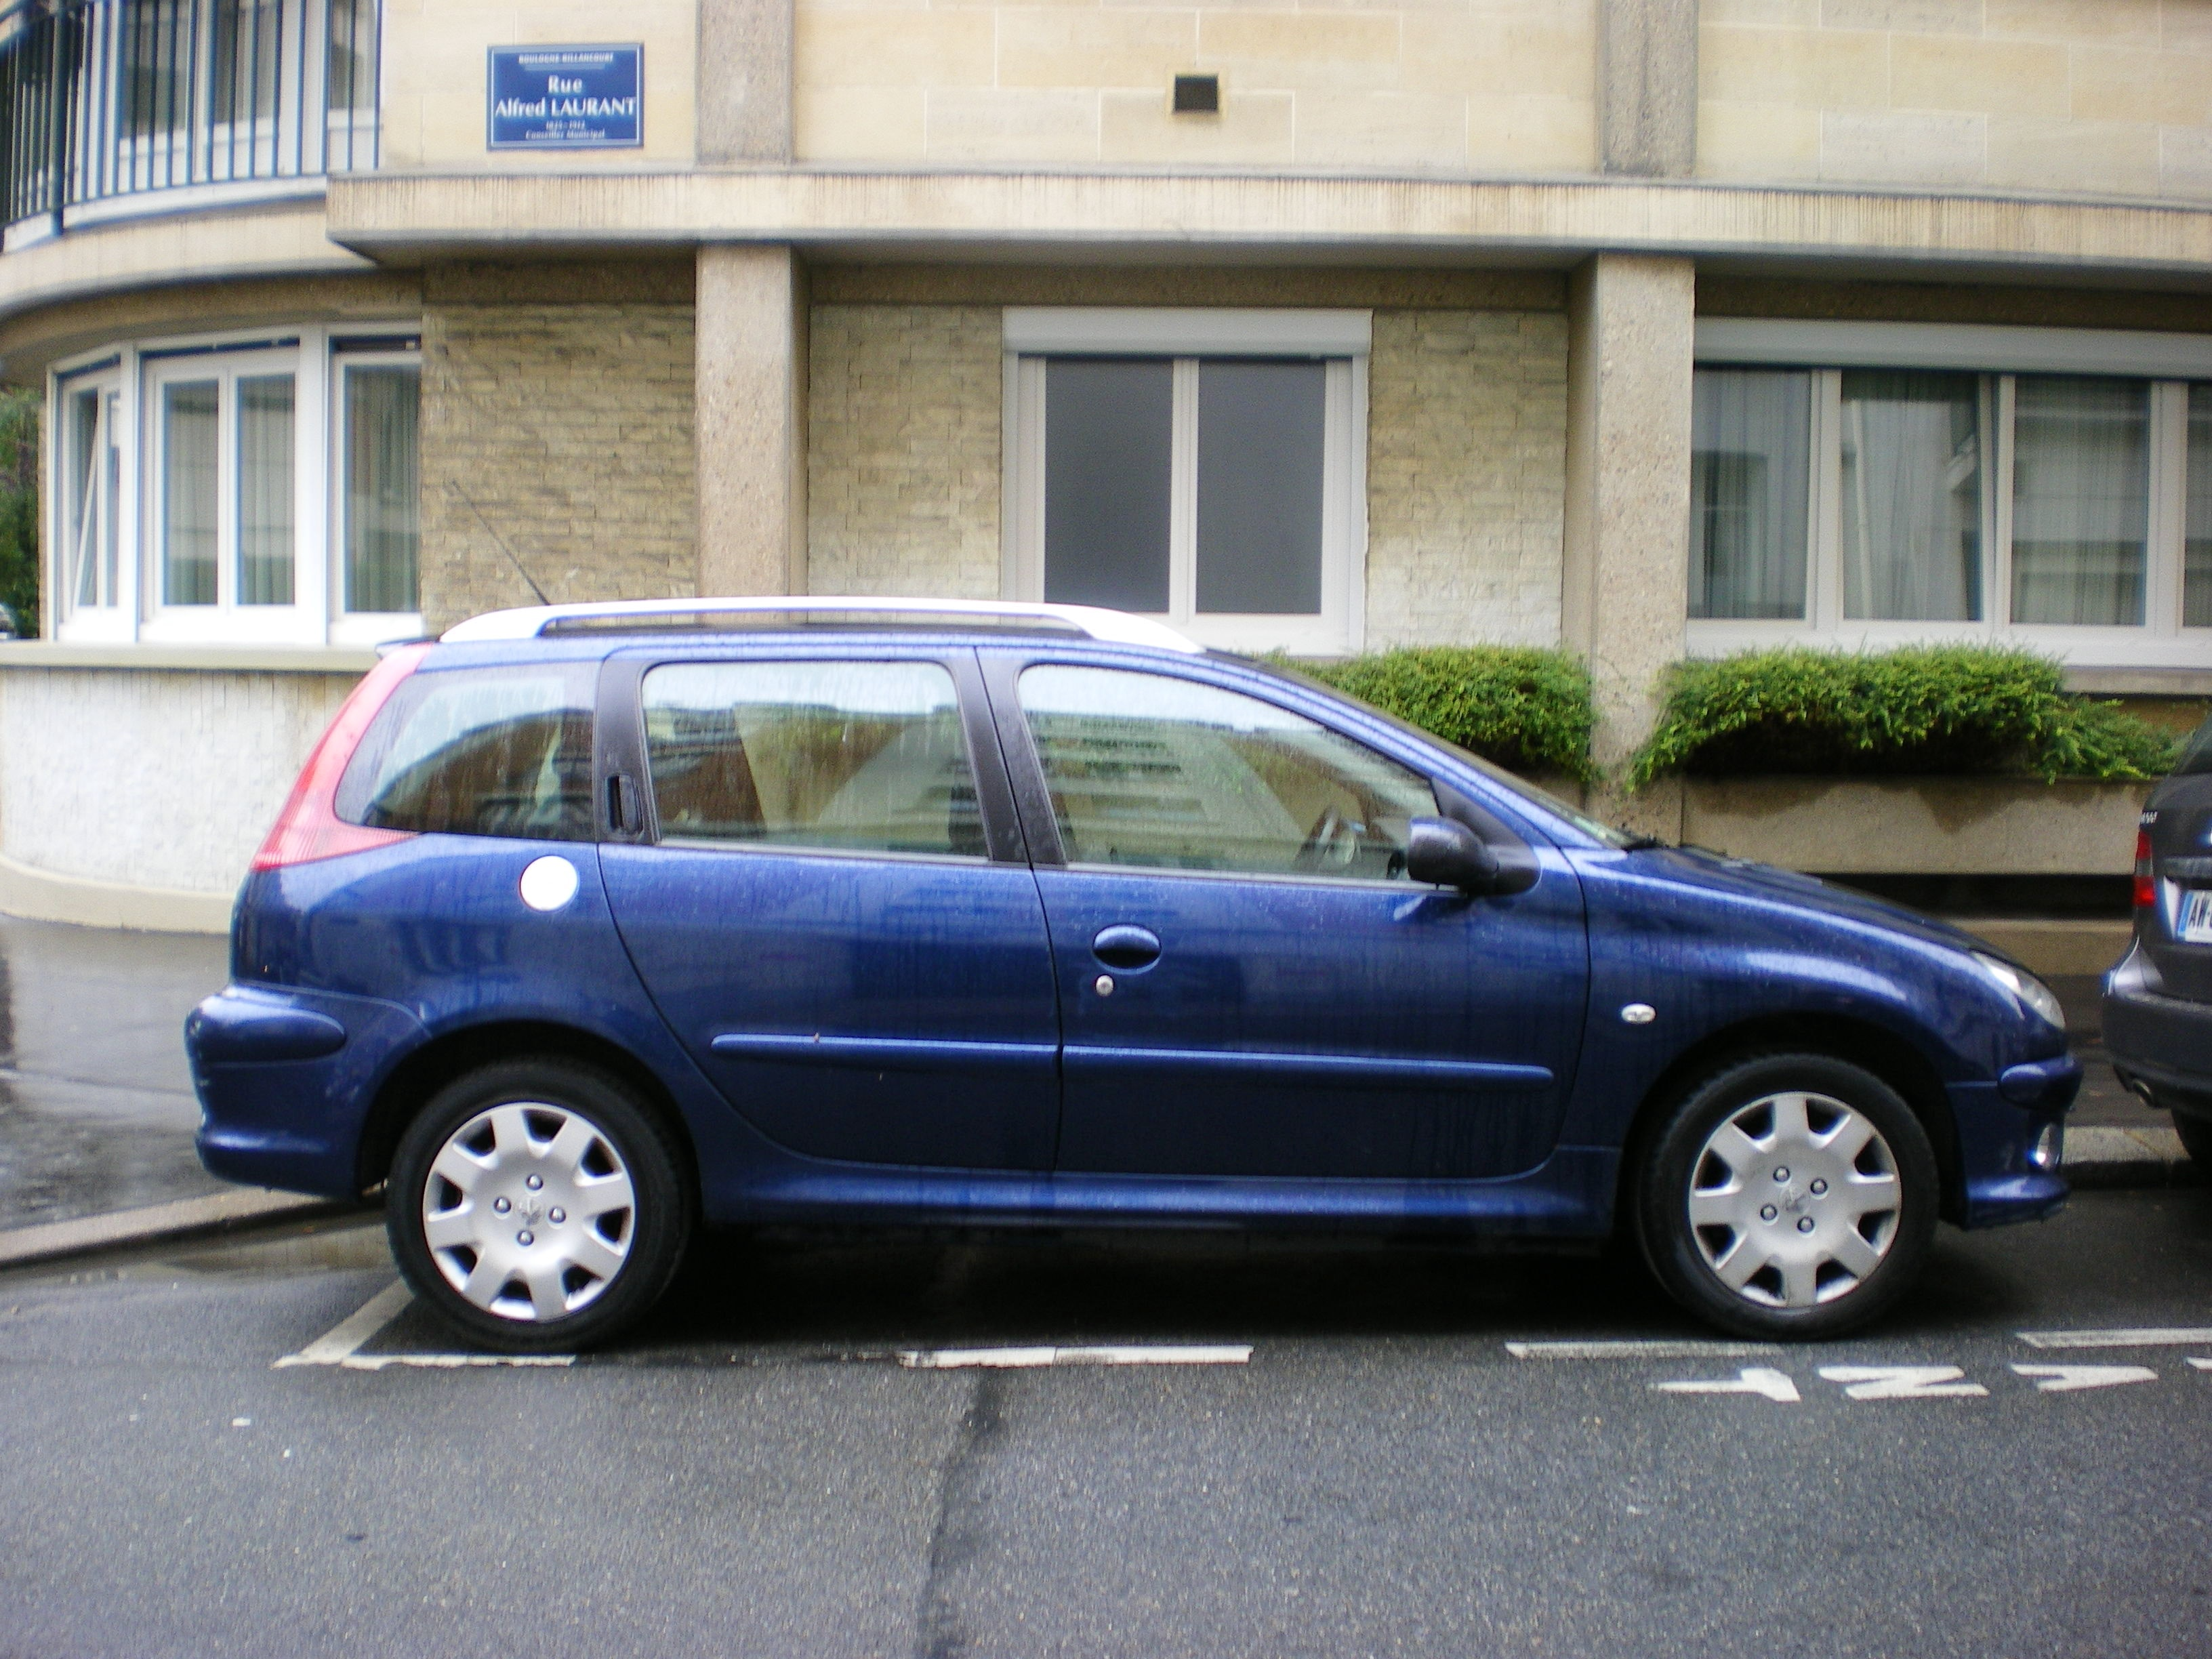 PEUGEOT 206 SW TRENDY - 4 places - 5 portes, 2005